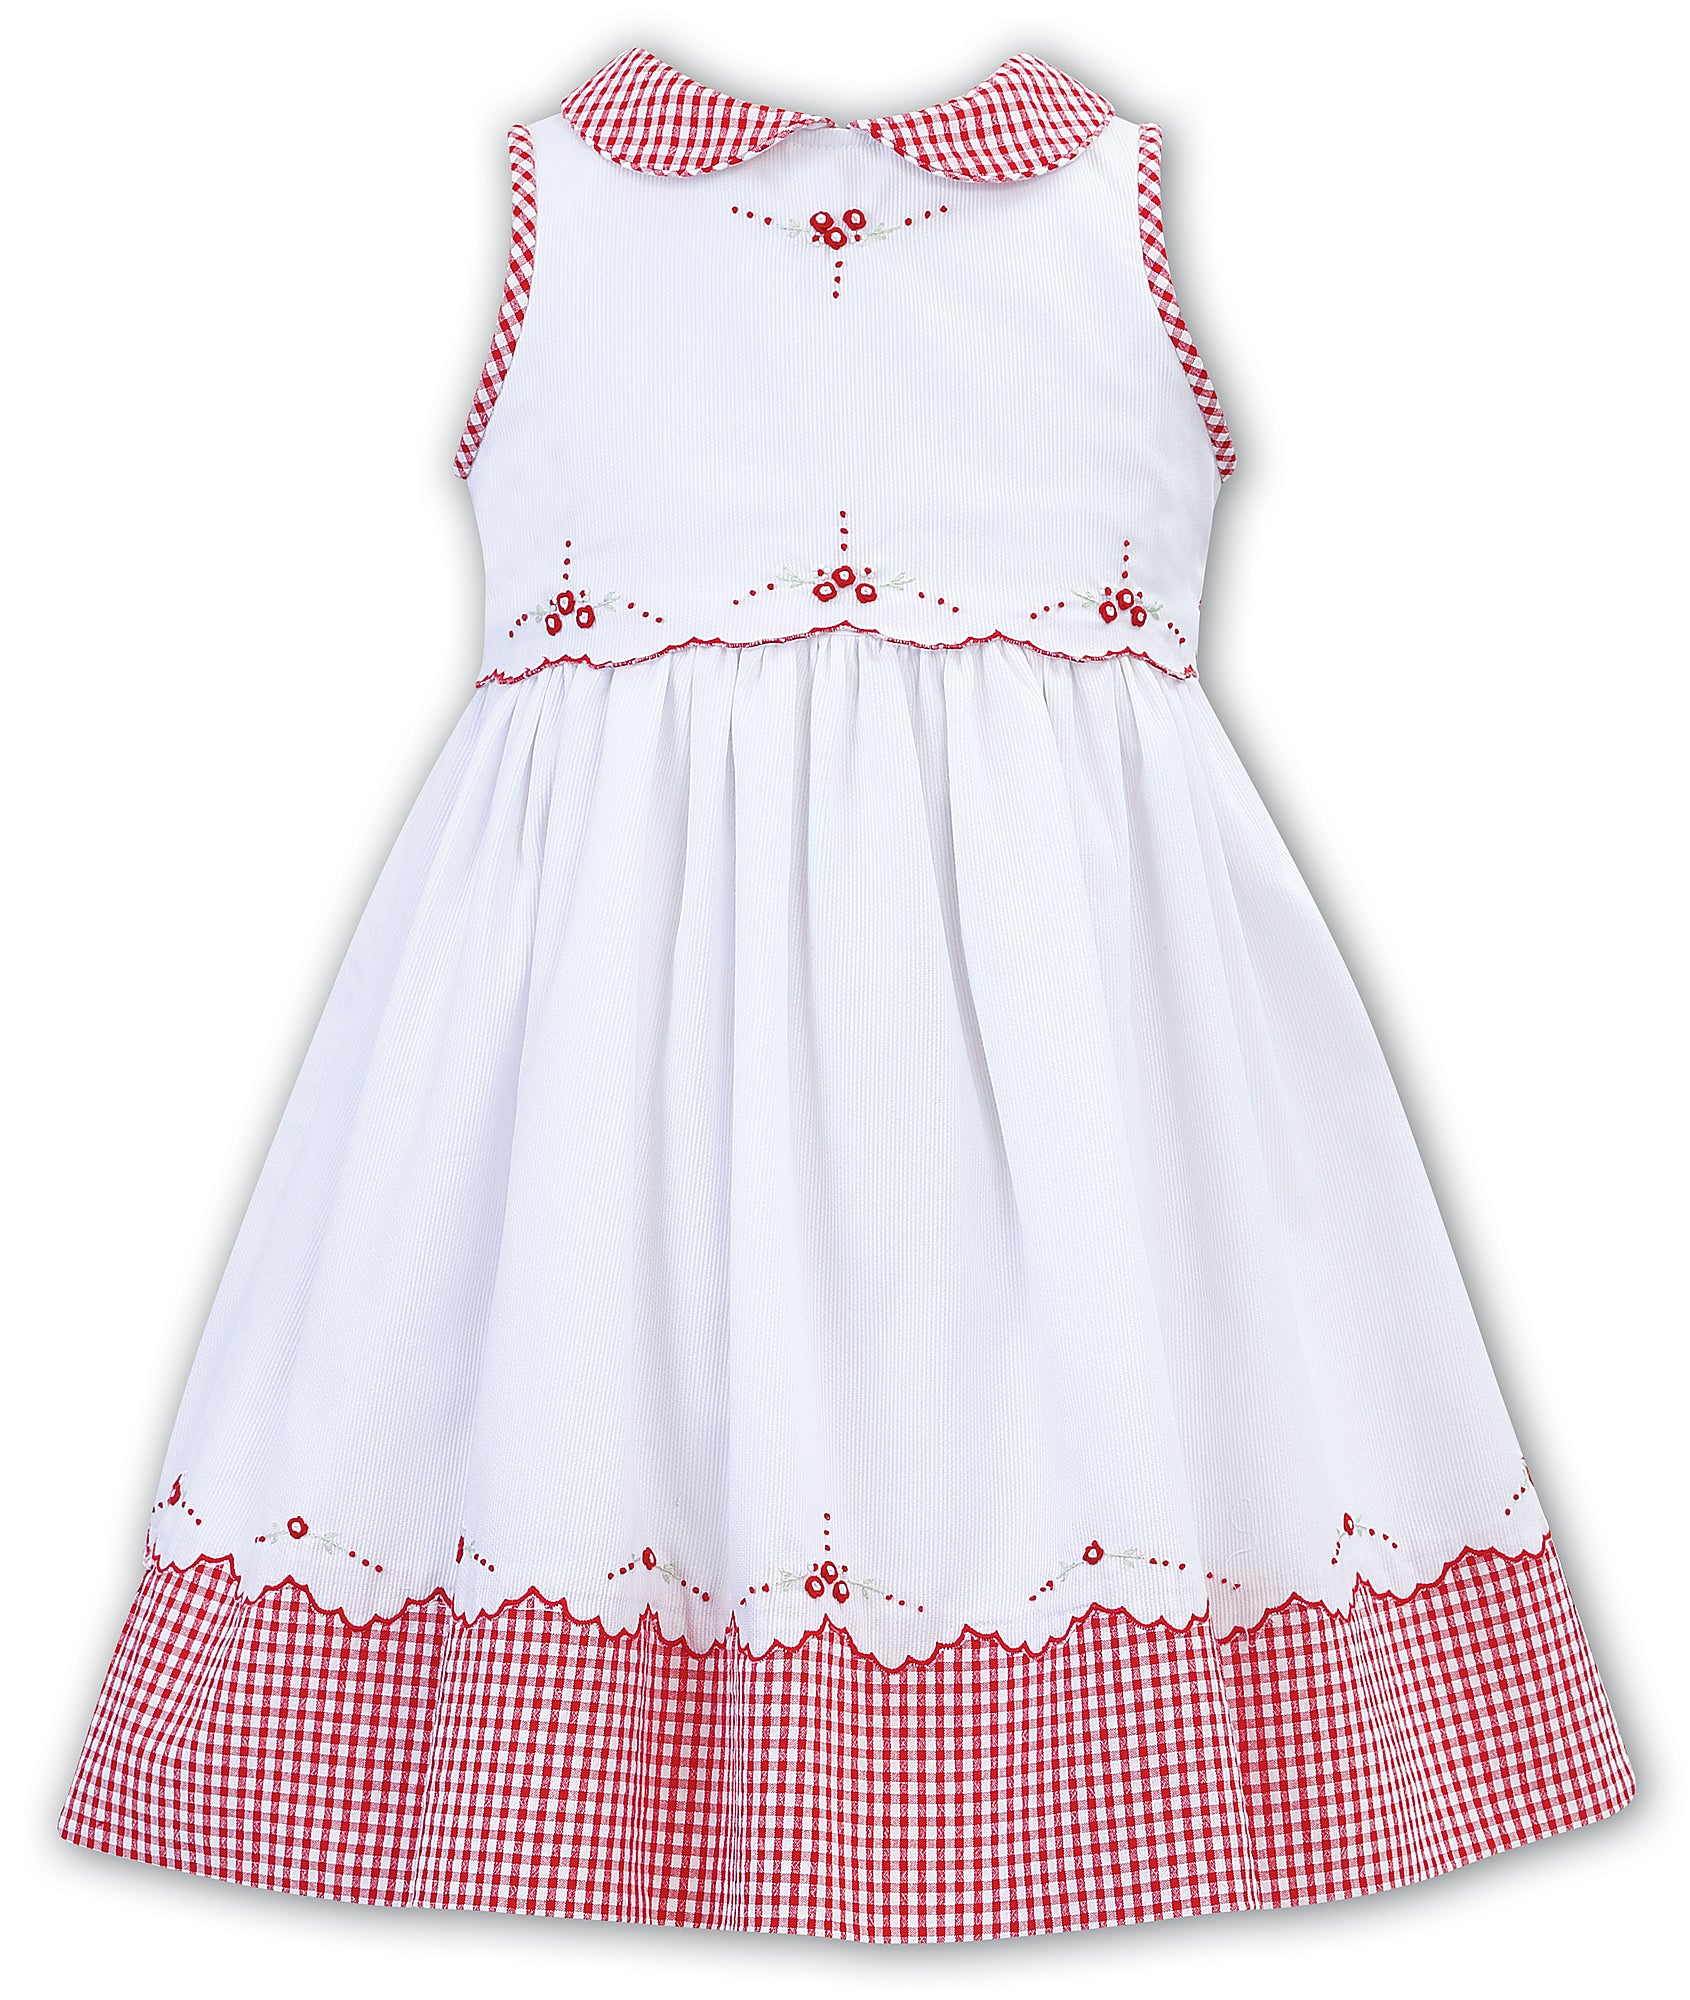 Sarah louise of england red gingham dress with floral hand embroidery